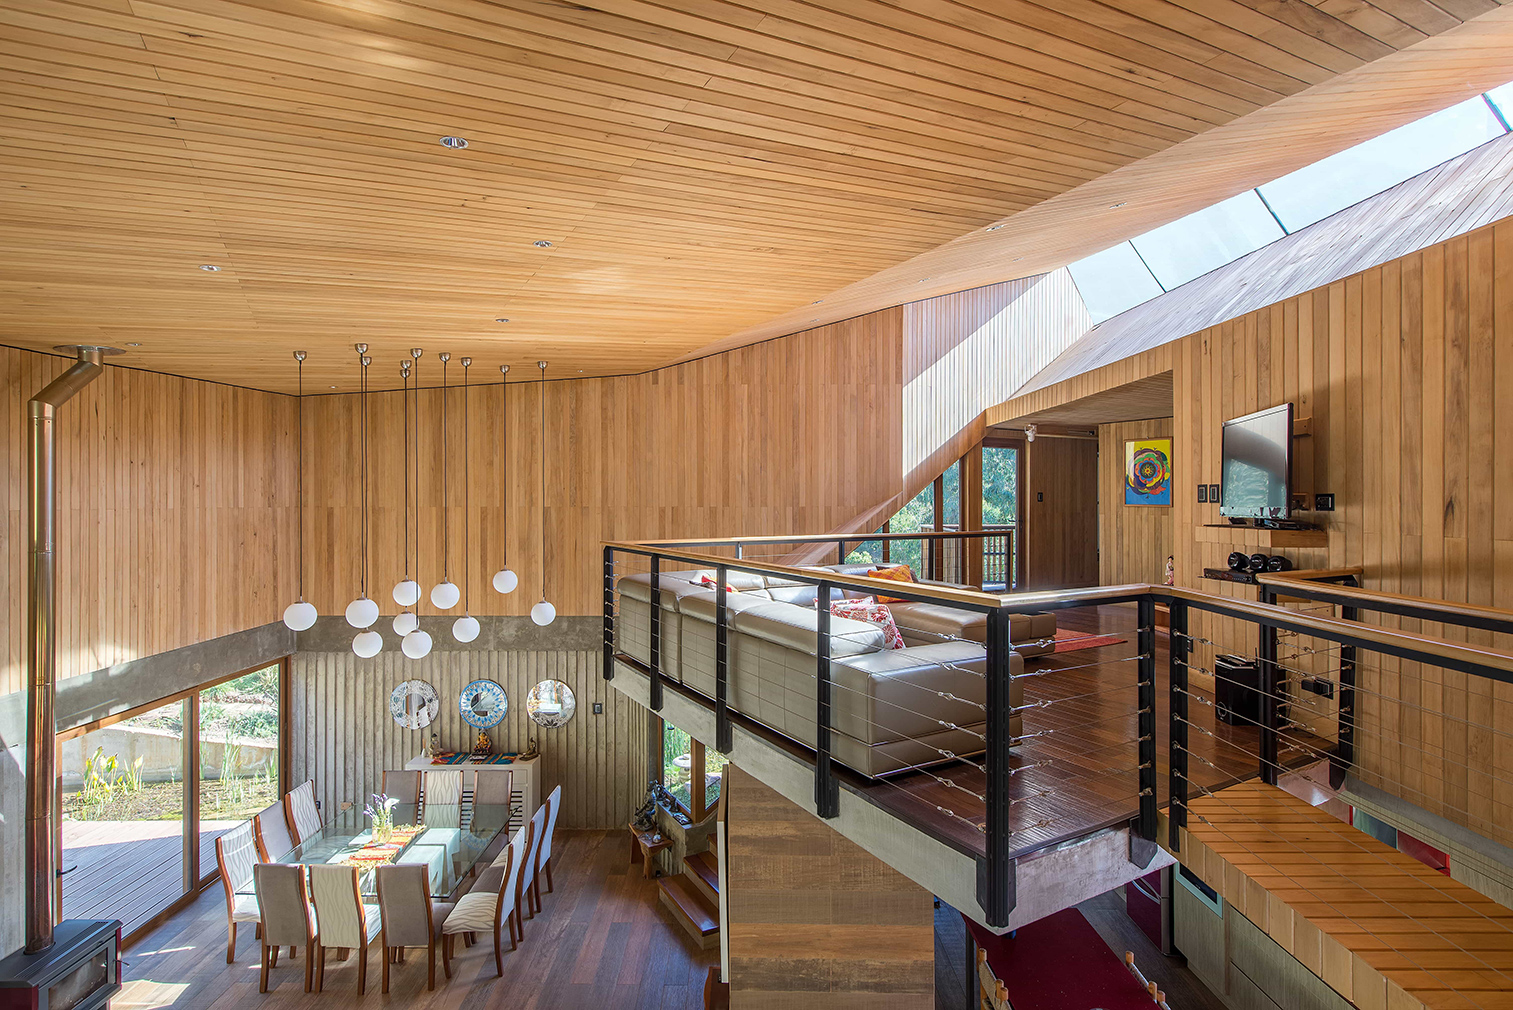 Casa El Maqui is a timber-clad mountain retreat near Santiago